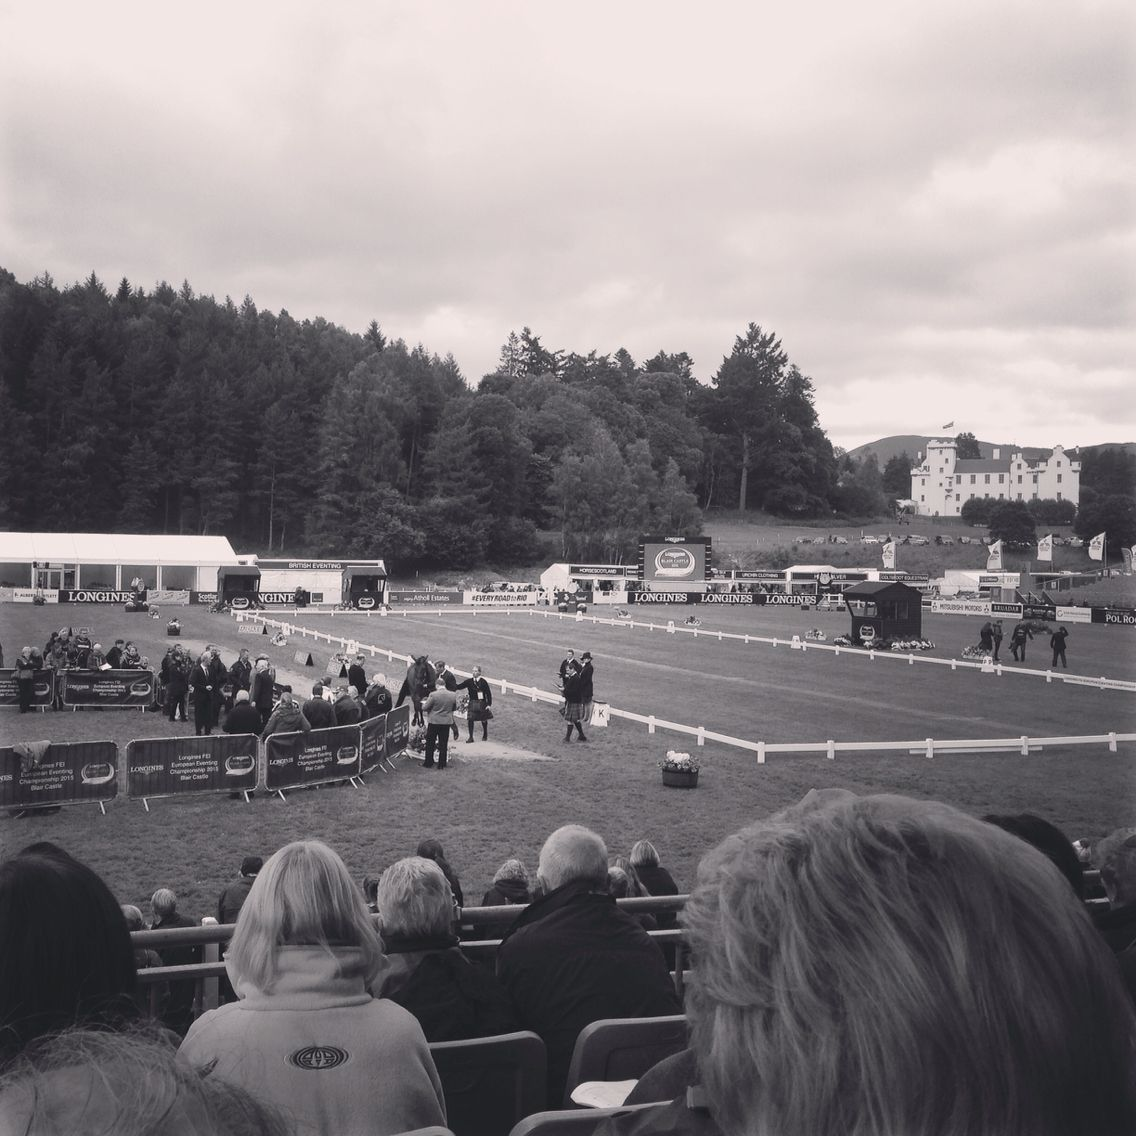 First Horse Inspection, Longines FEI European Eventing